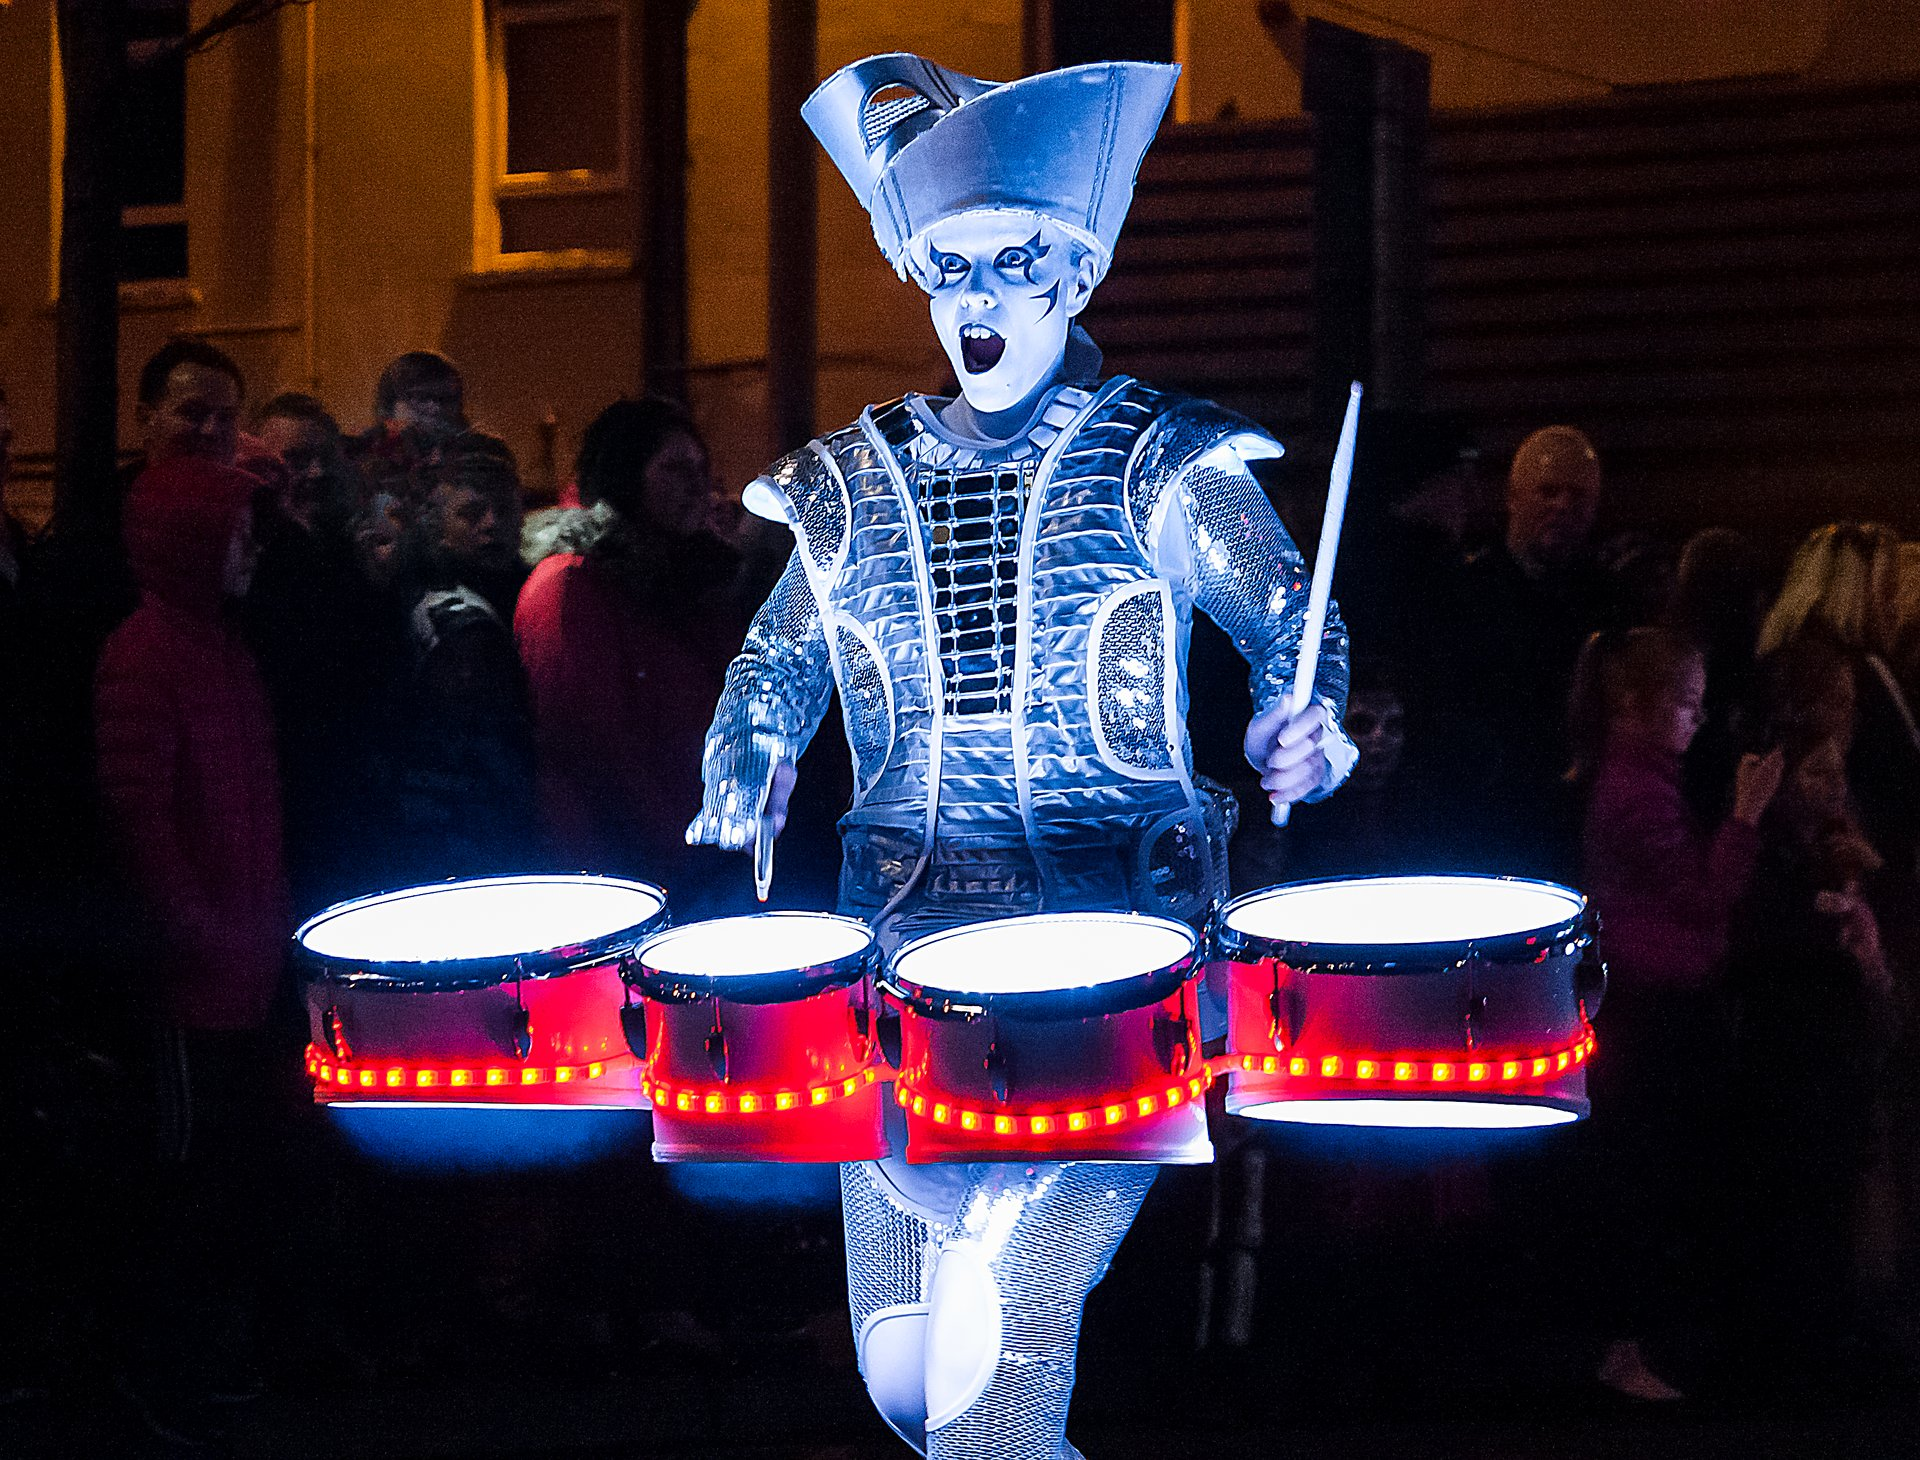 Illuminated drummer at the Derry Halloween Carnival 2020